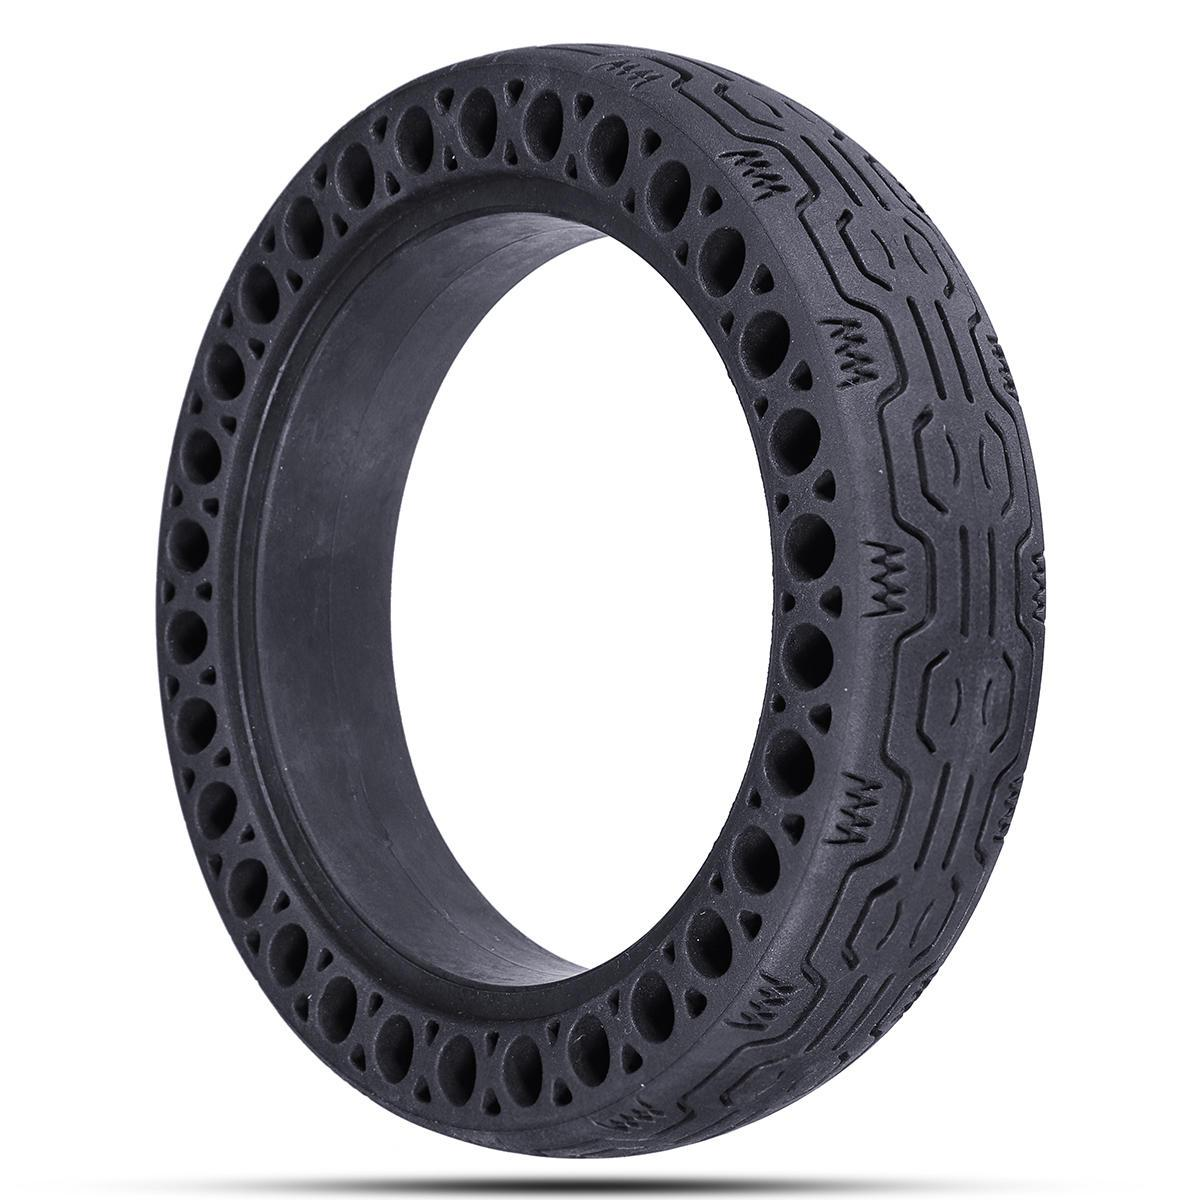 Airless Futuristic NPT Solid Tyre For Xiaomi Mijia M365 Electric Scooter-Electric Scooters London